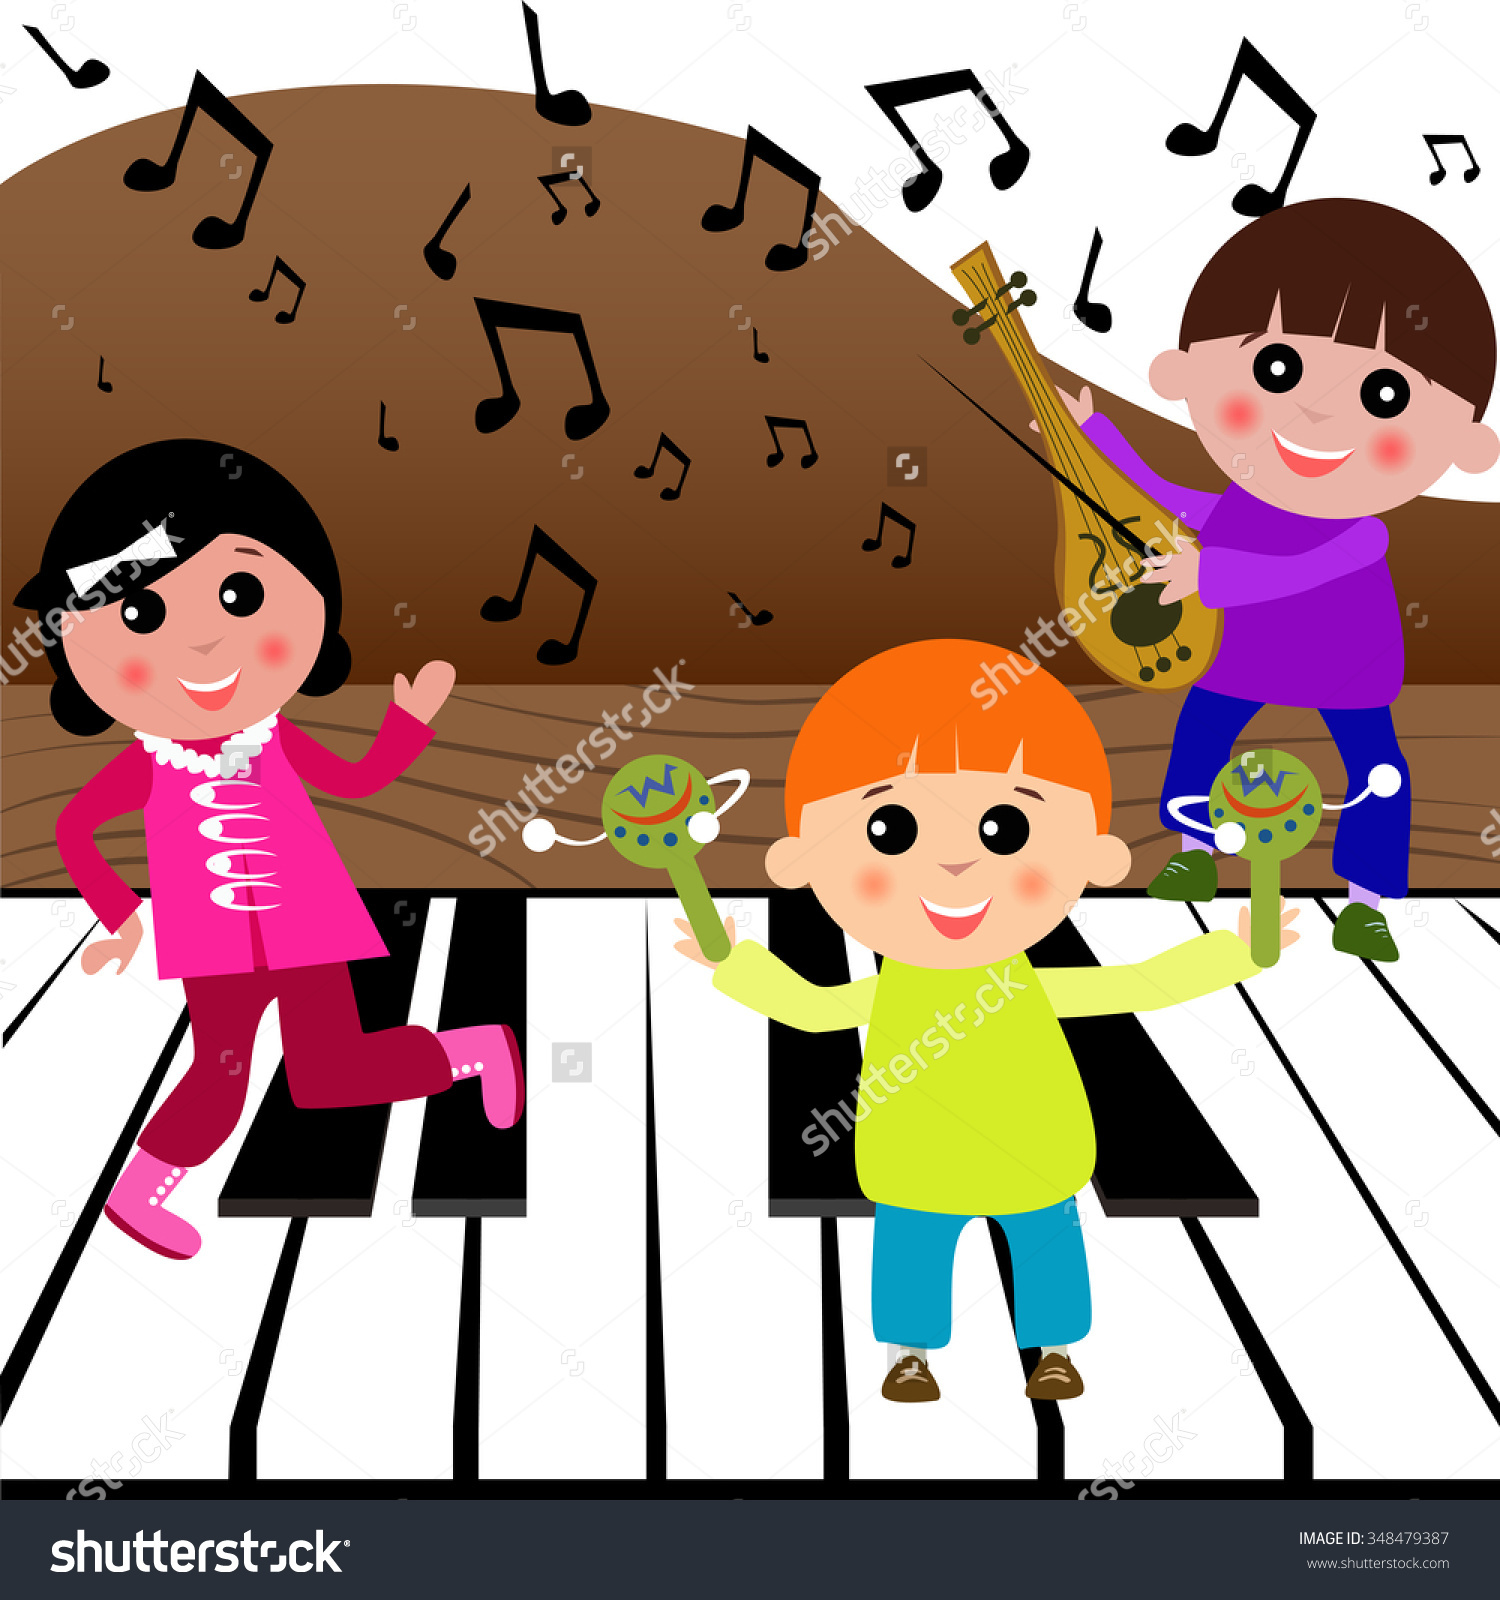 children playing musical instruments clipart #11